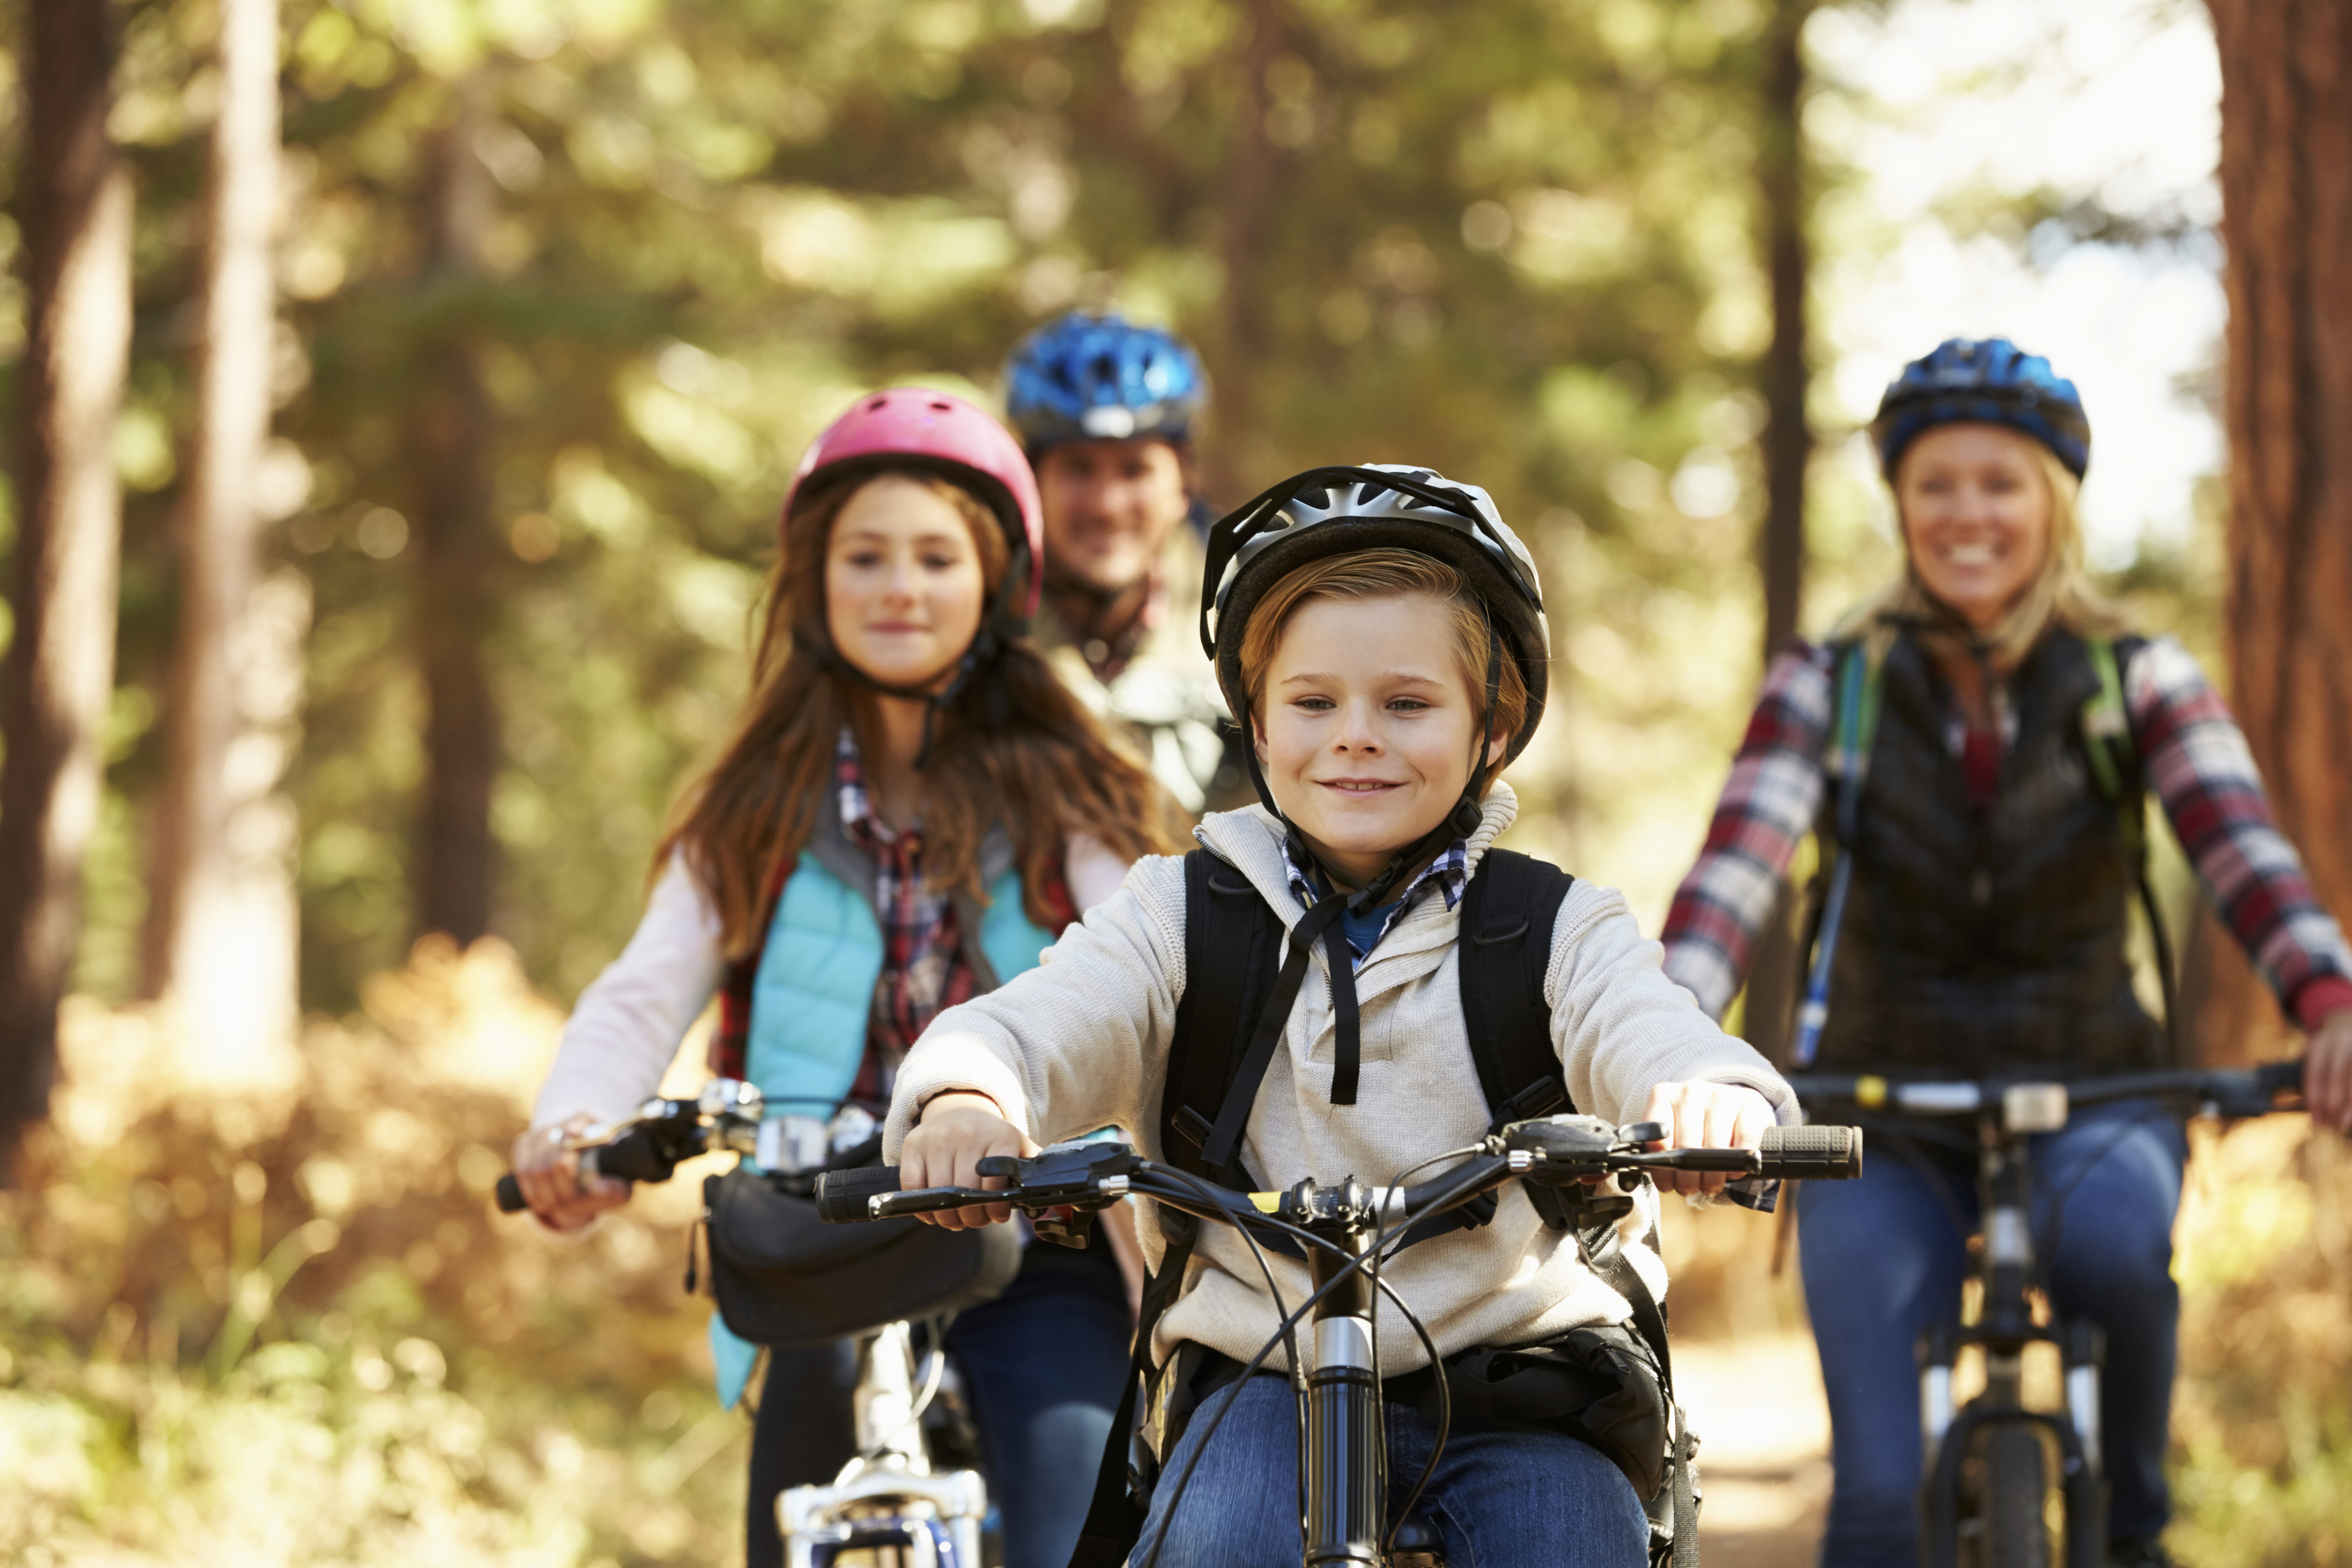 Family mountain biking on forest trail, front view, close-up